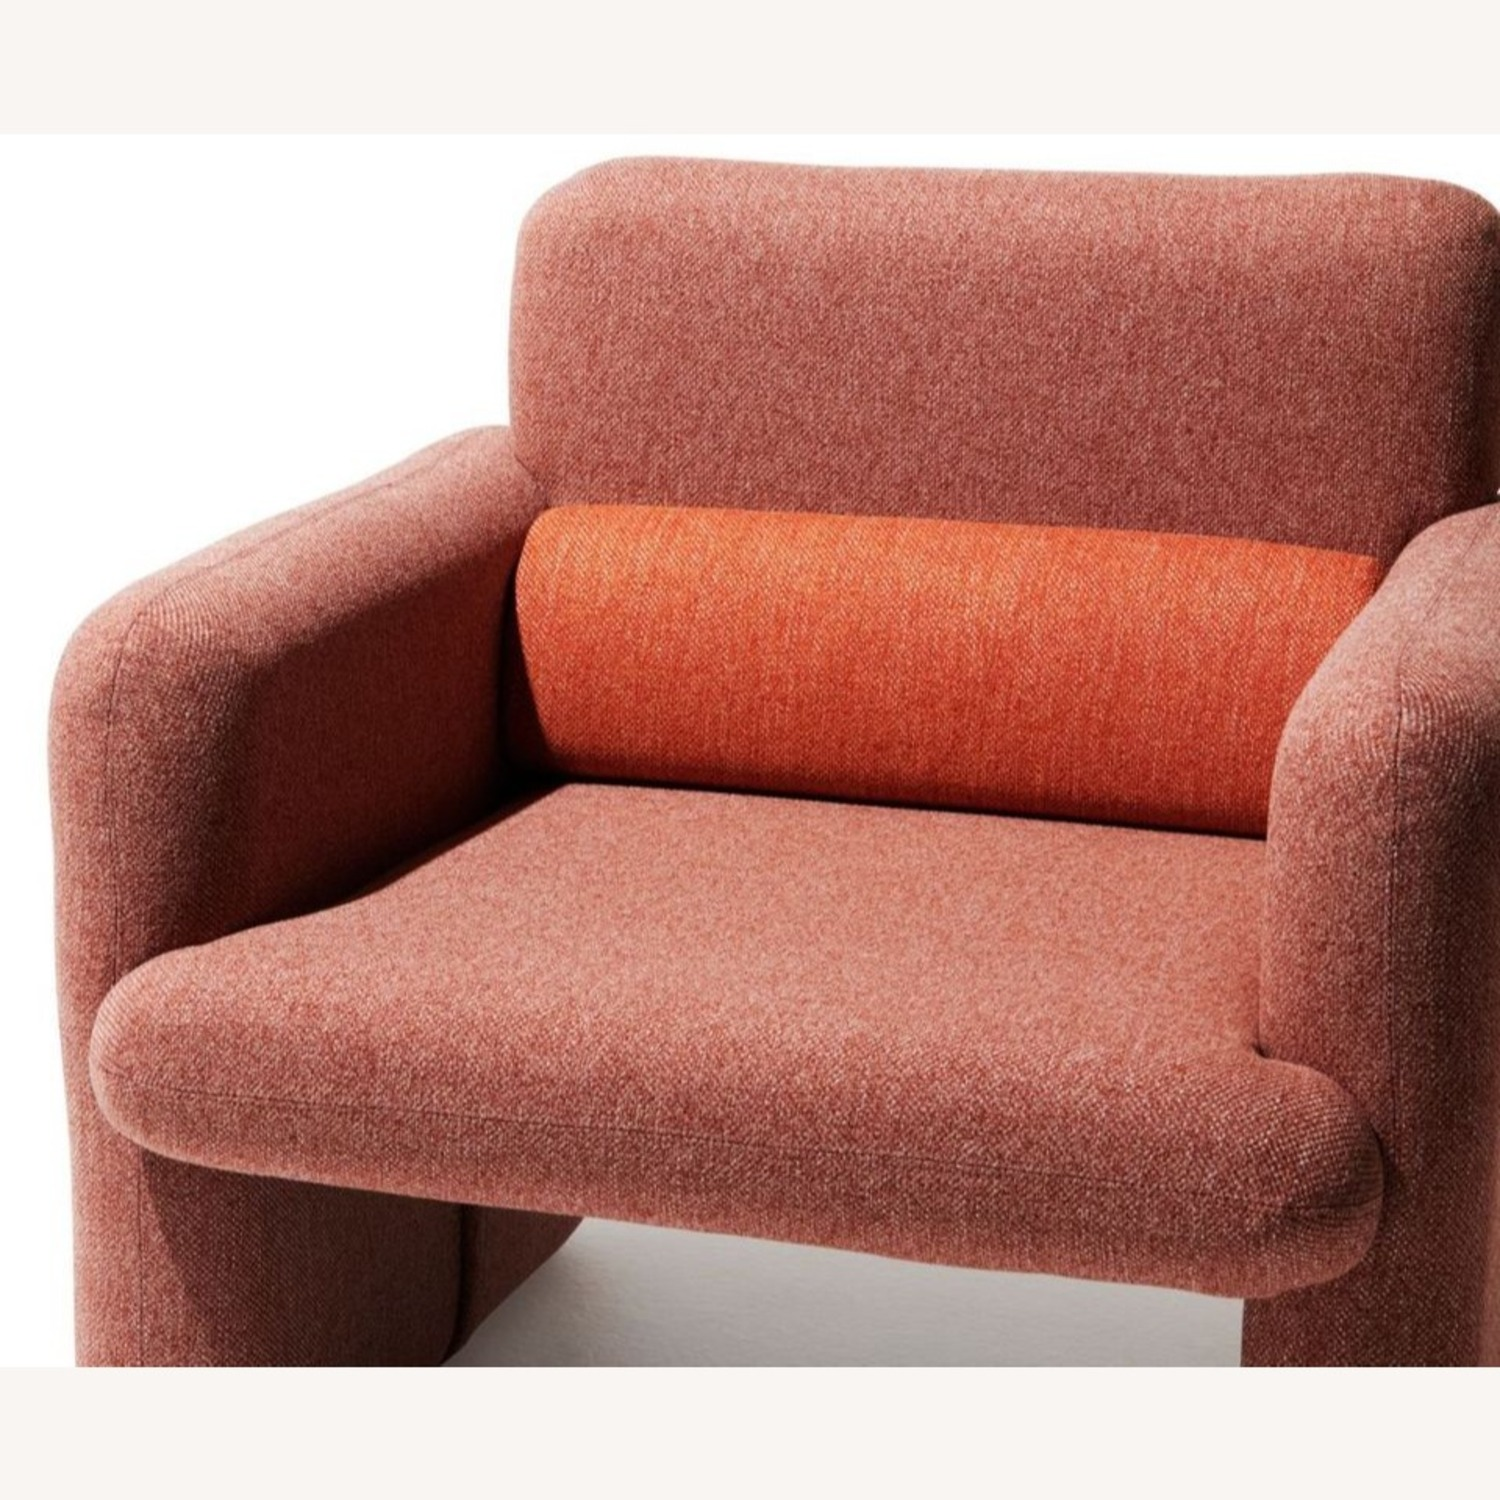 Industry West Plume Lounge Chair - Red/Pink - image-4